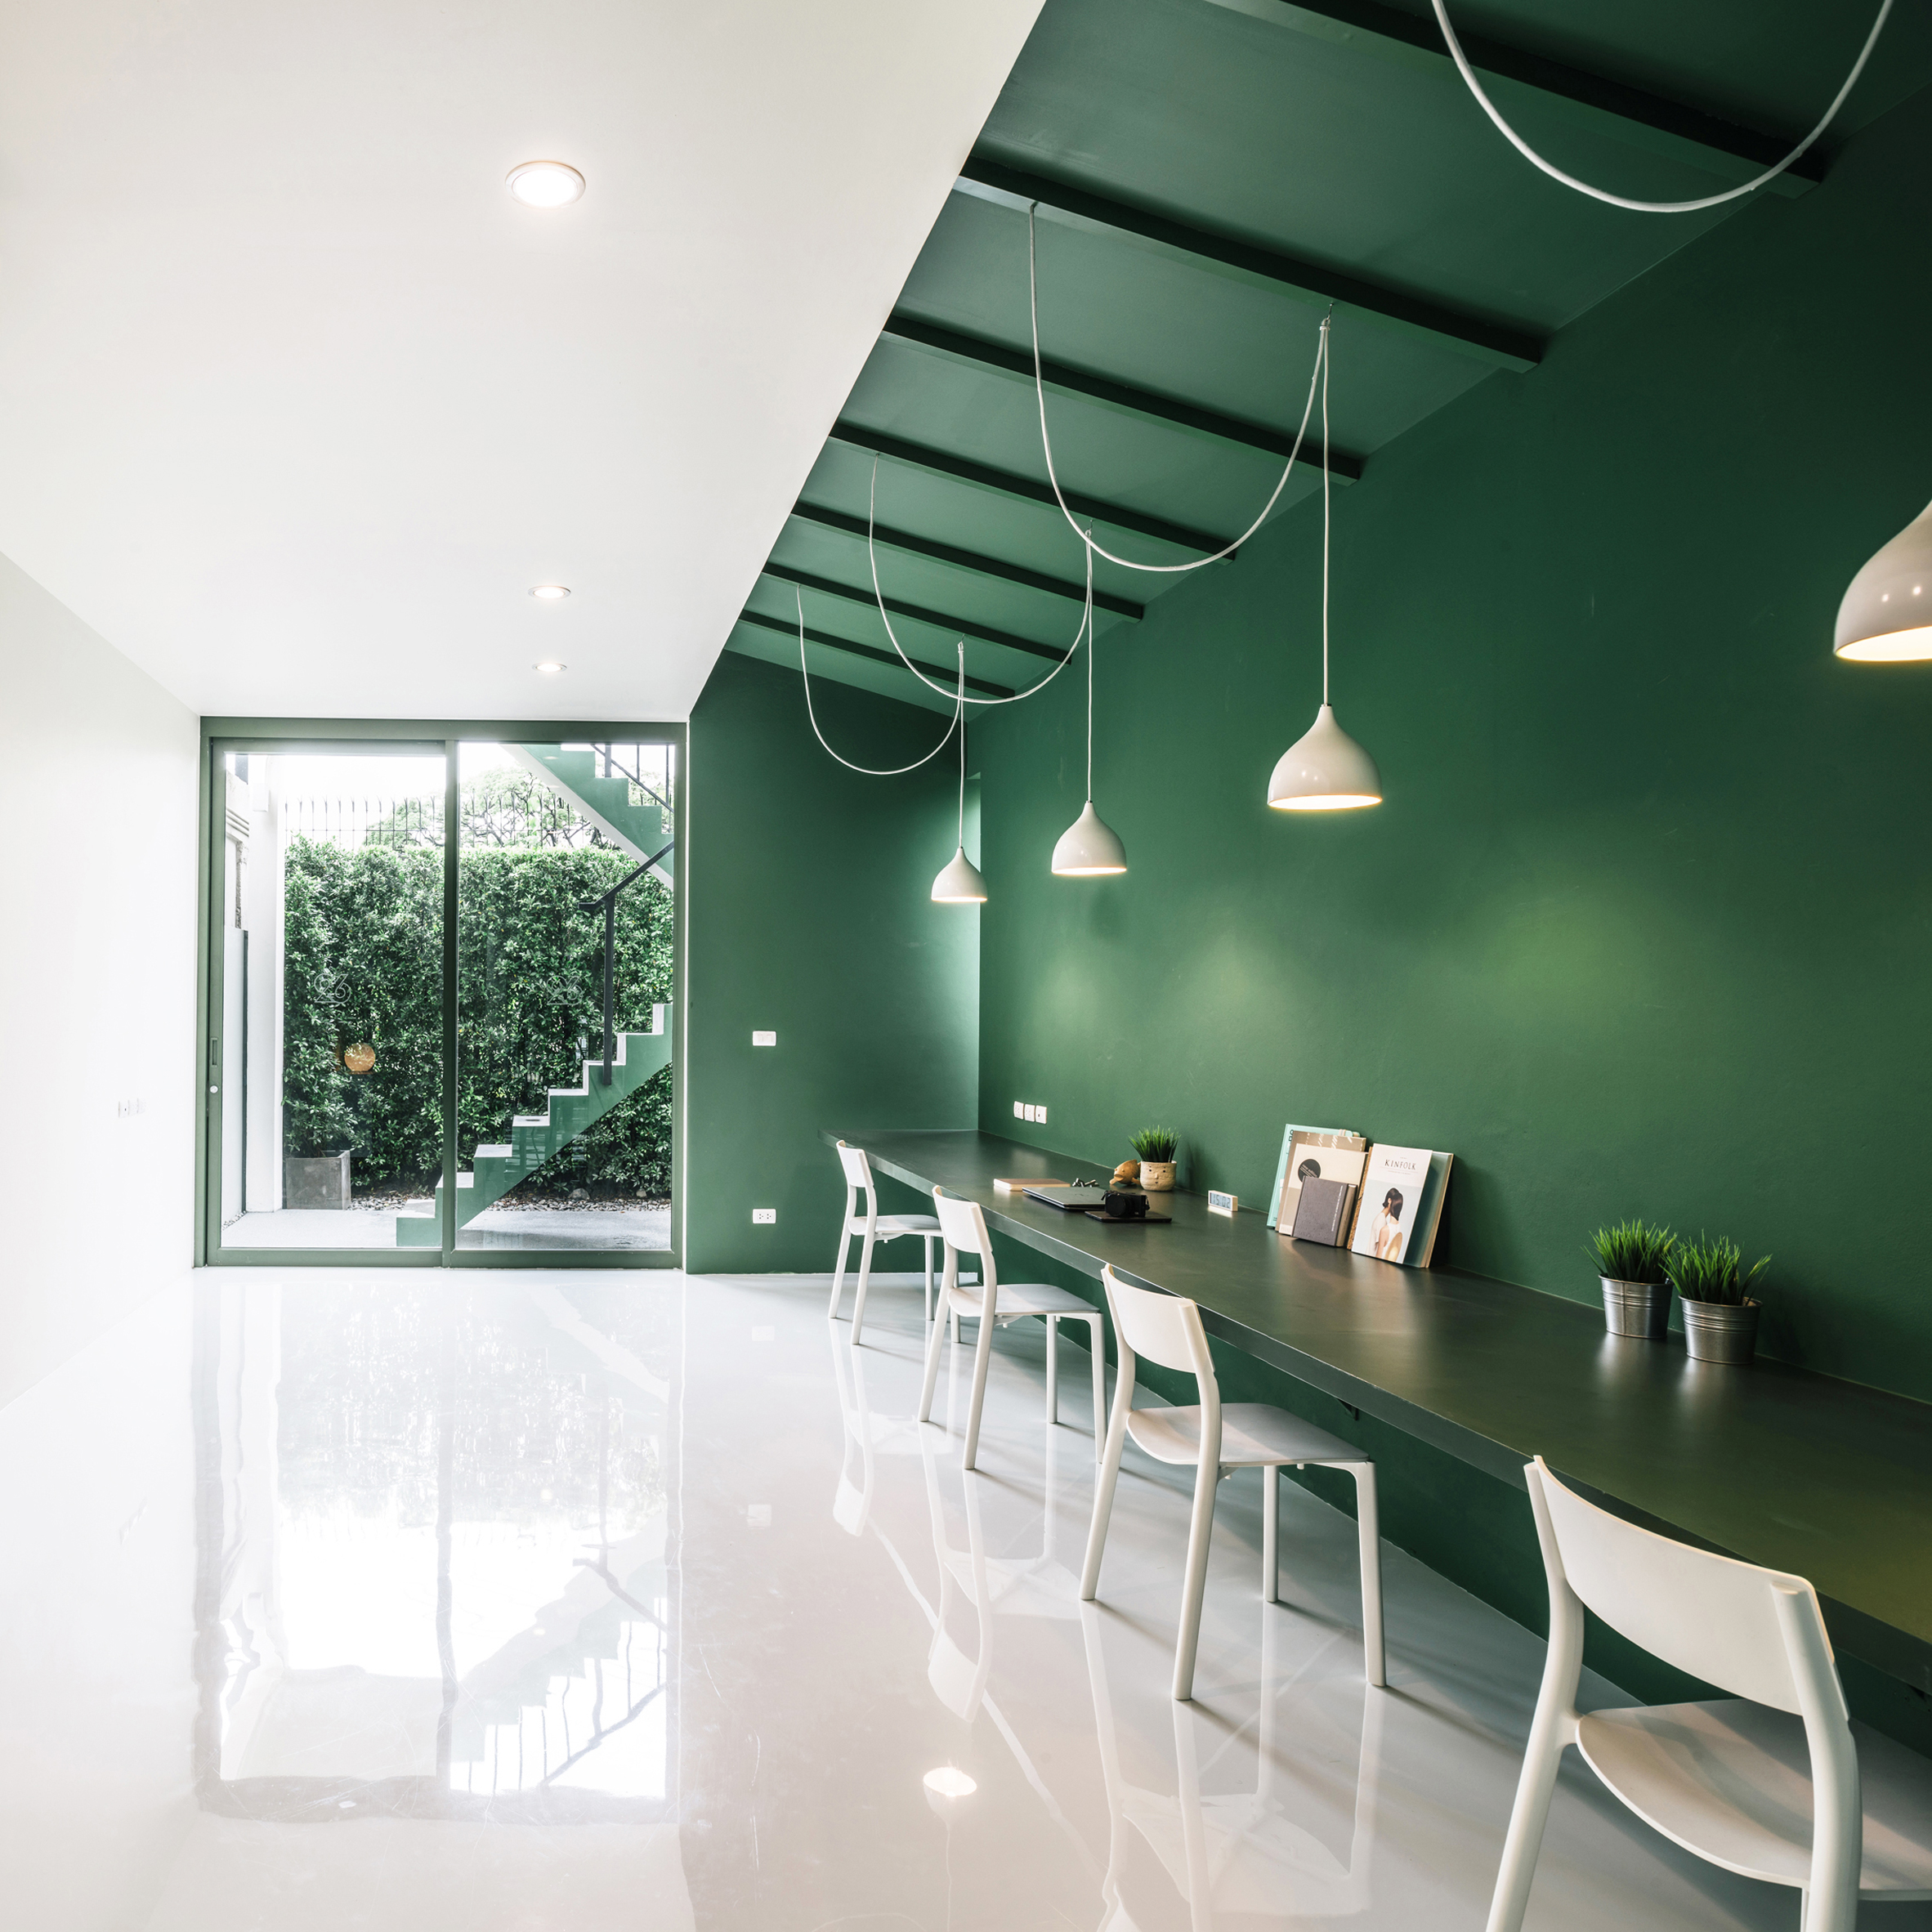 12 Of The Best Minimalist Office Interiors Where Theres Space To Think